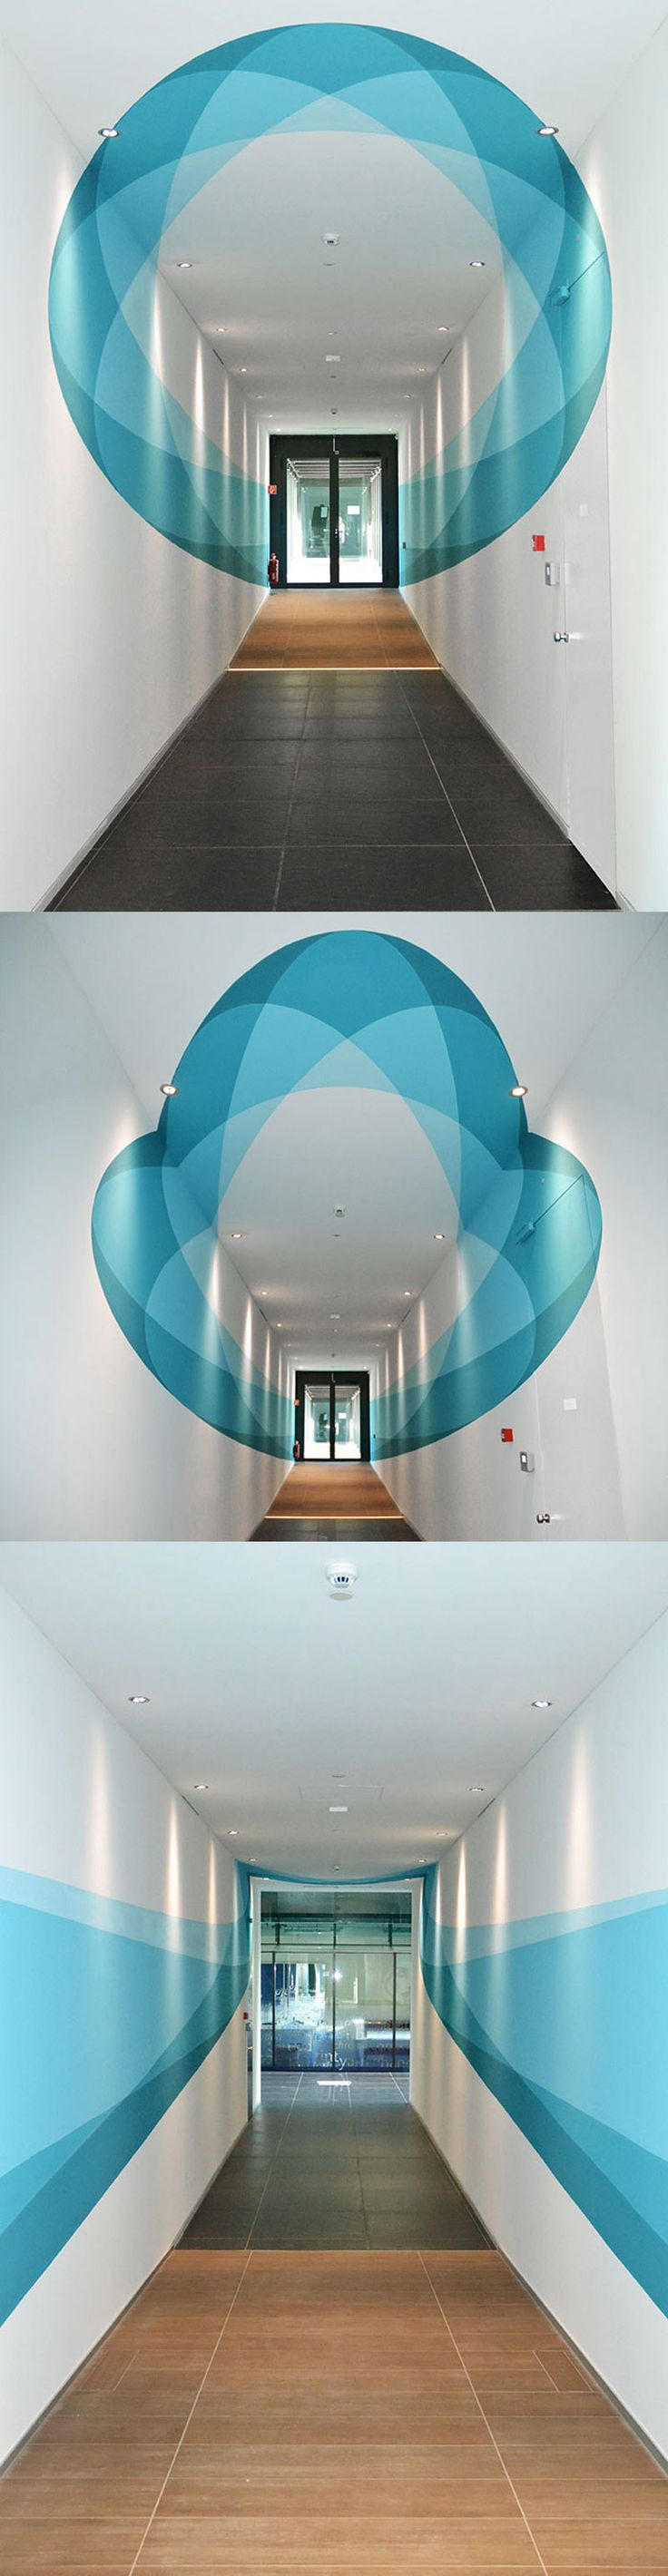 Italian urban artists Truly Design, were commissioned to paint a mural inside the headquarters of the VF Corporation in Switzerland.